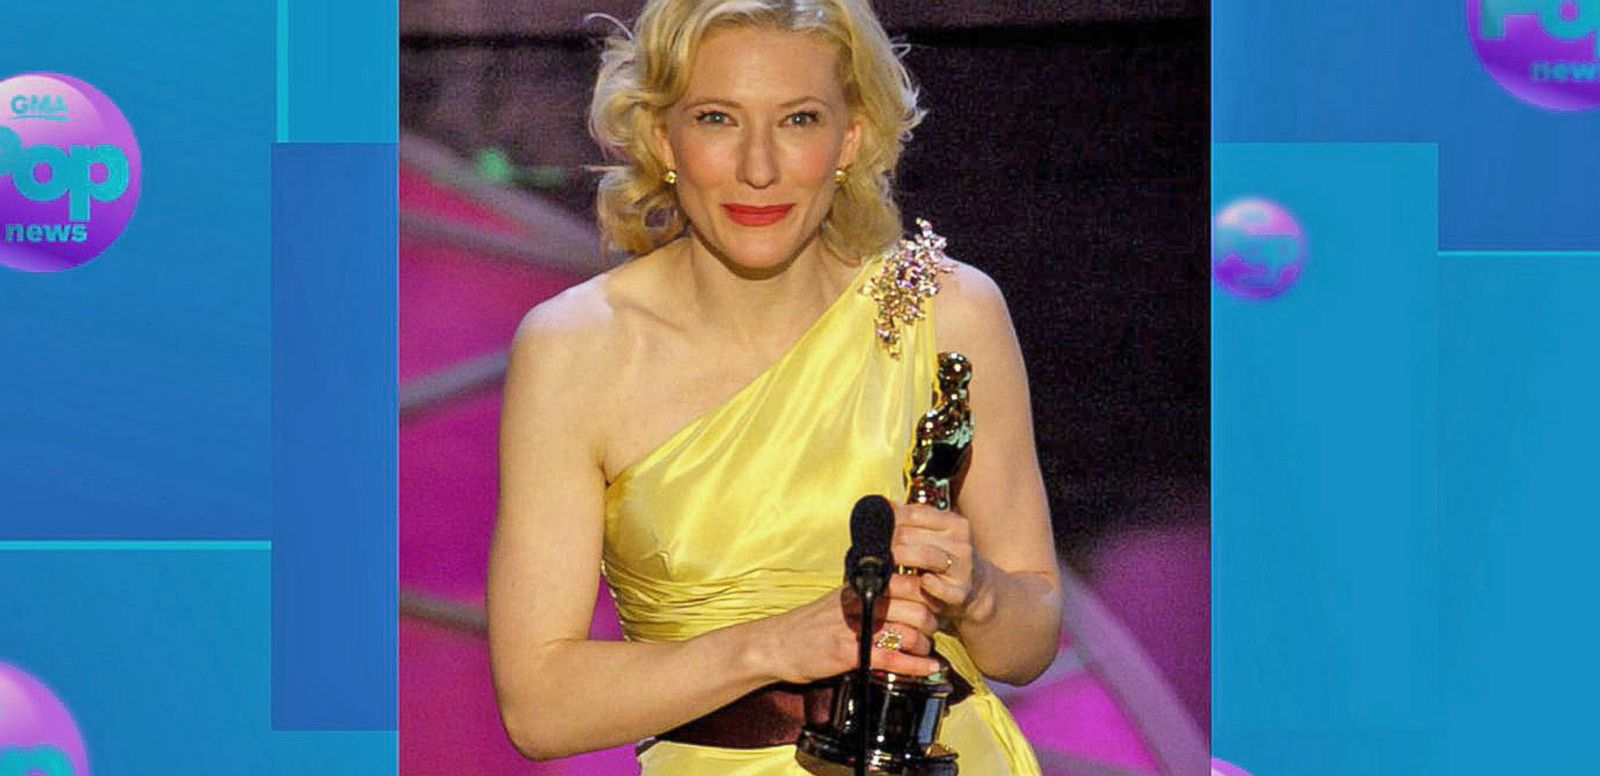 VIDEO: The Academy Offers New Way to Give Oscar Acceptance Speeches